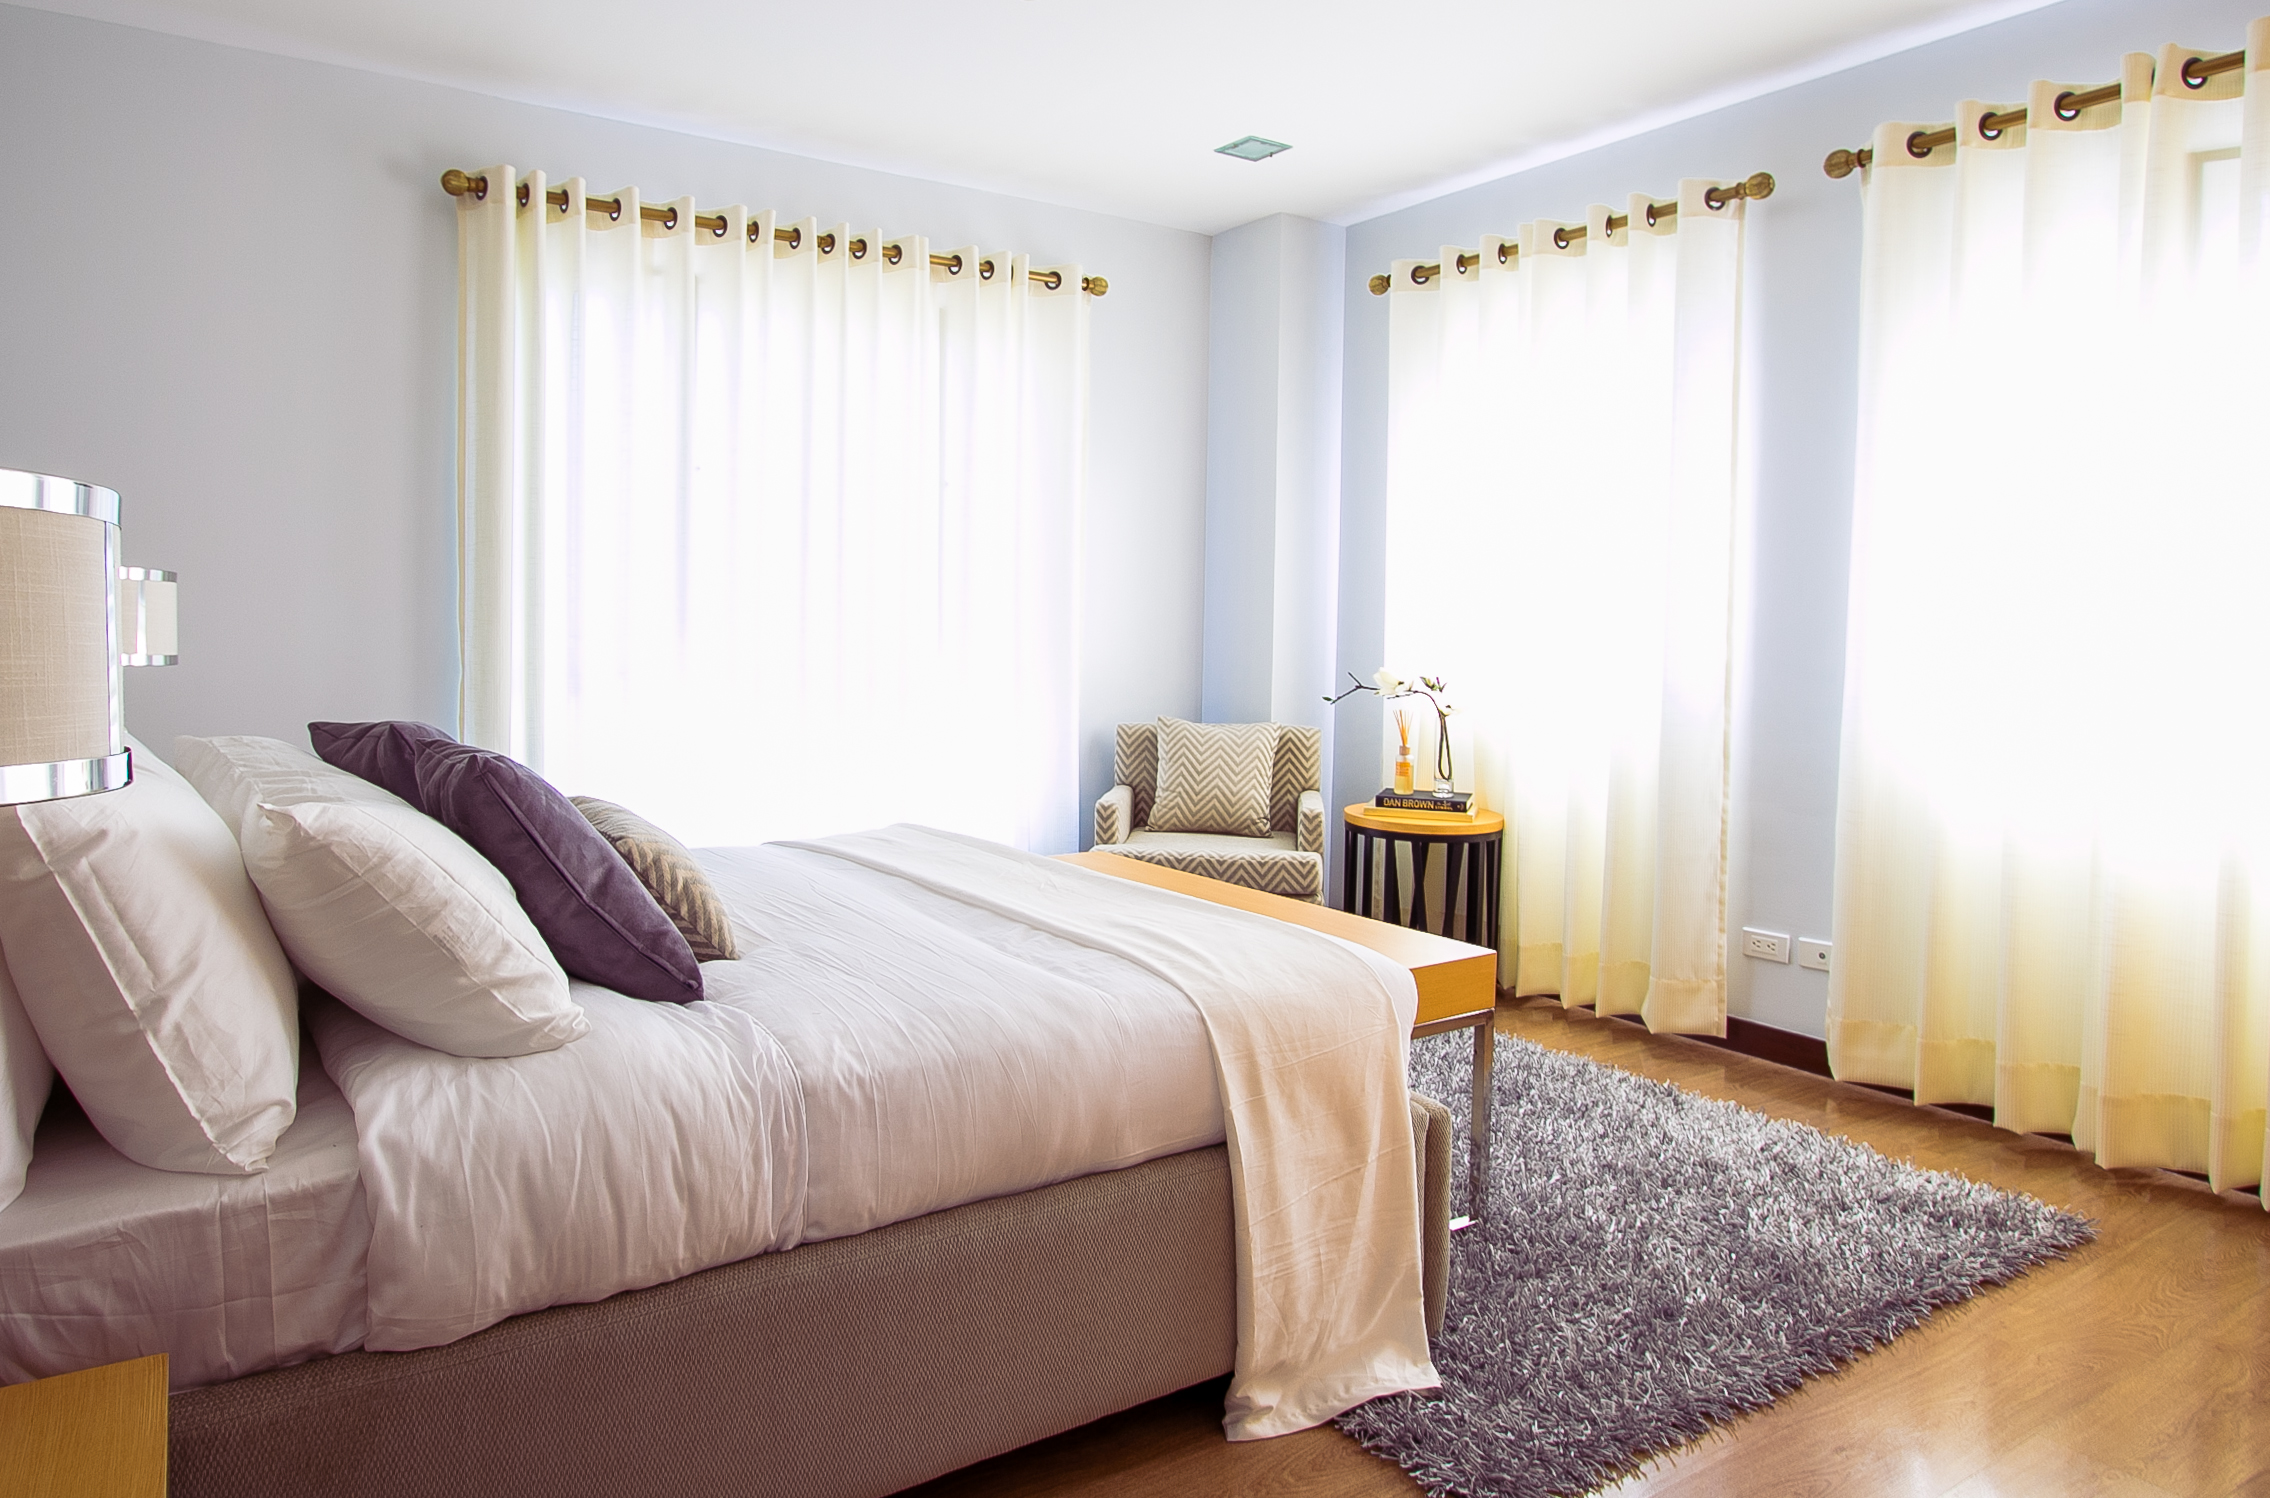 Bedroom, with lots of light and a well made bed. A good mattress is essential for a good sleep.